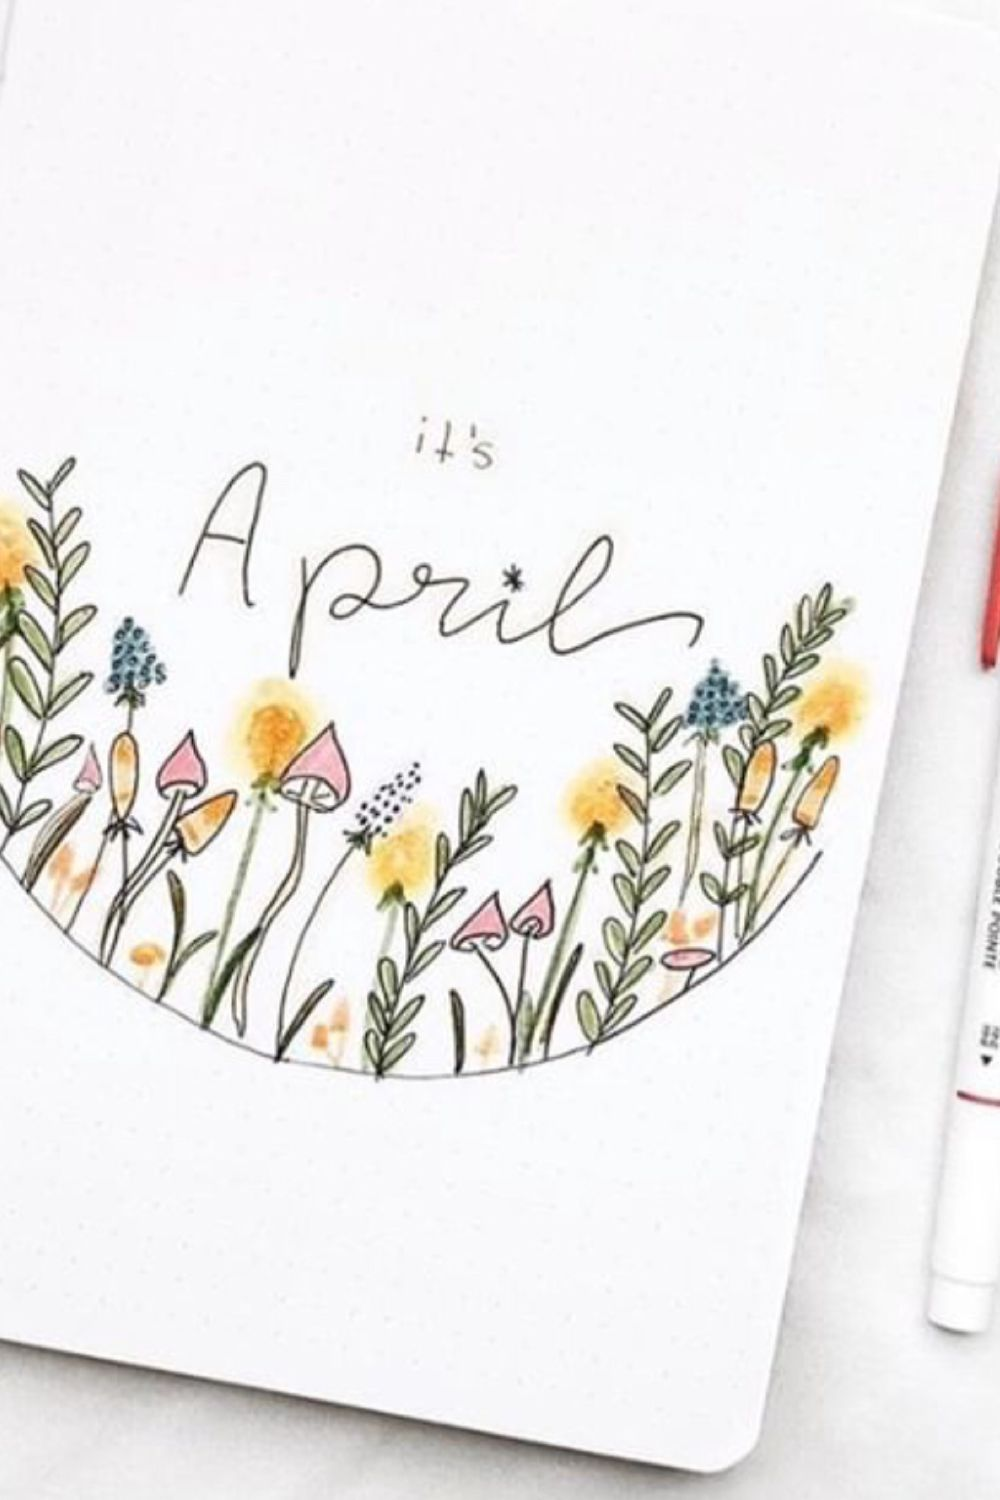 25 Wonderful April Bujo Spreads You Need to See - atinydreamer